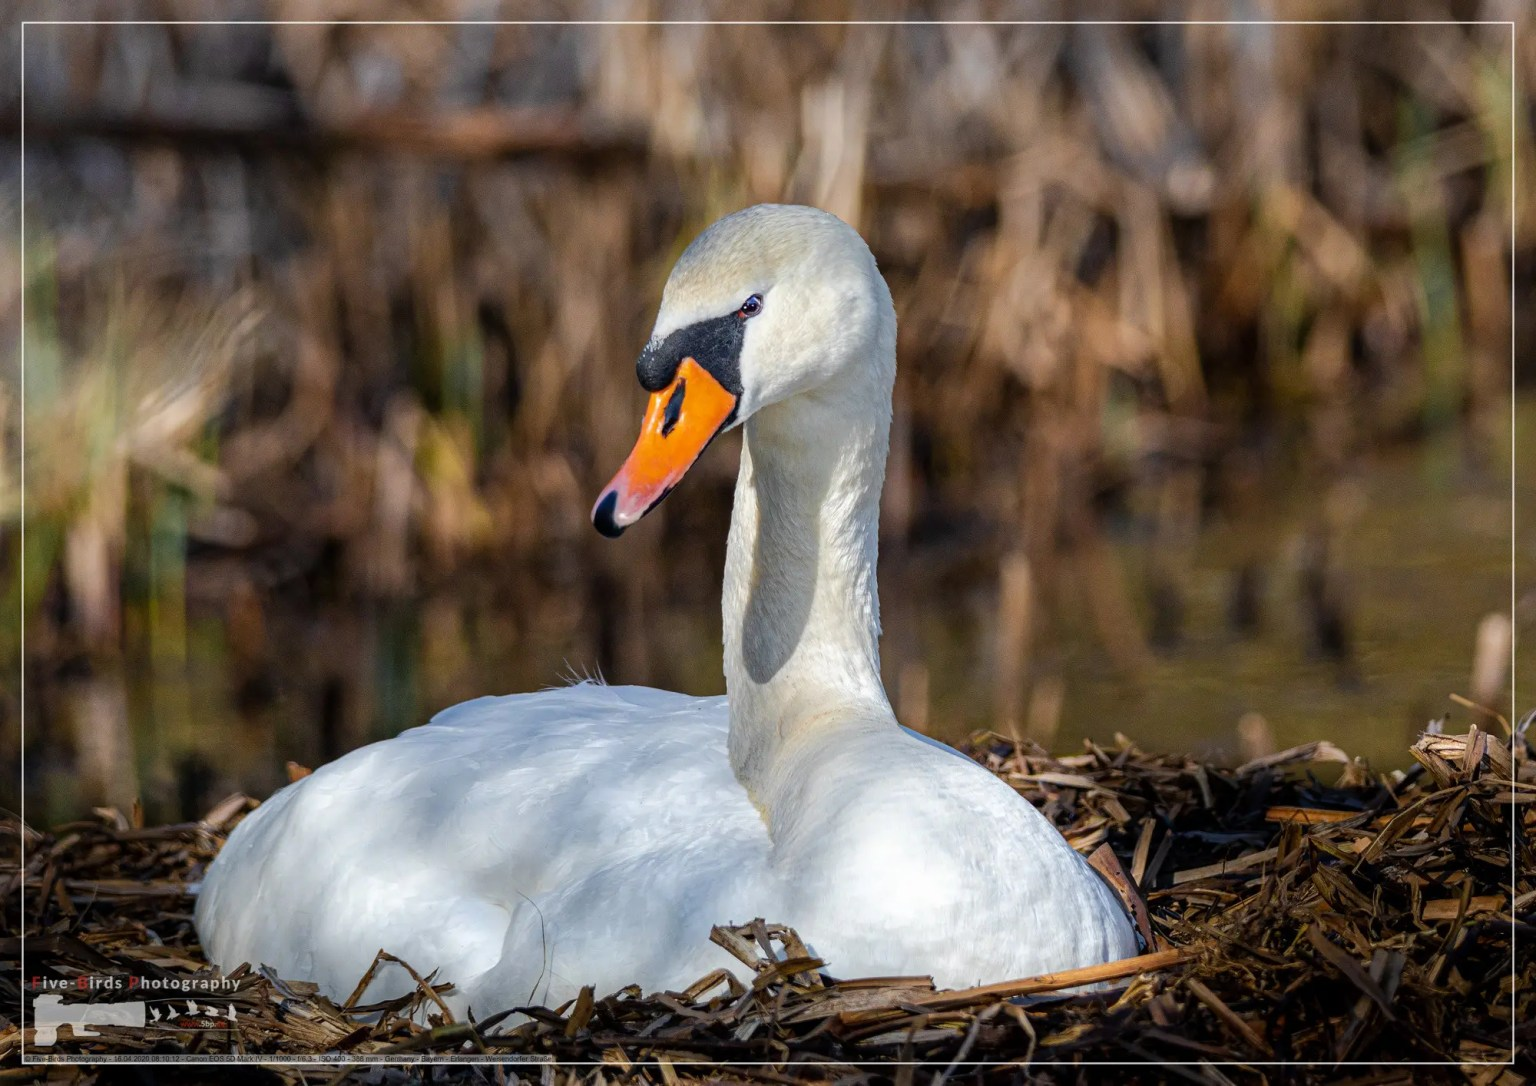 A female mute swan is brooding in its nest in southern Germany